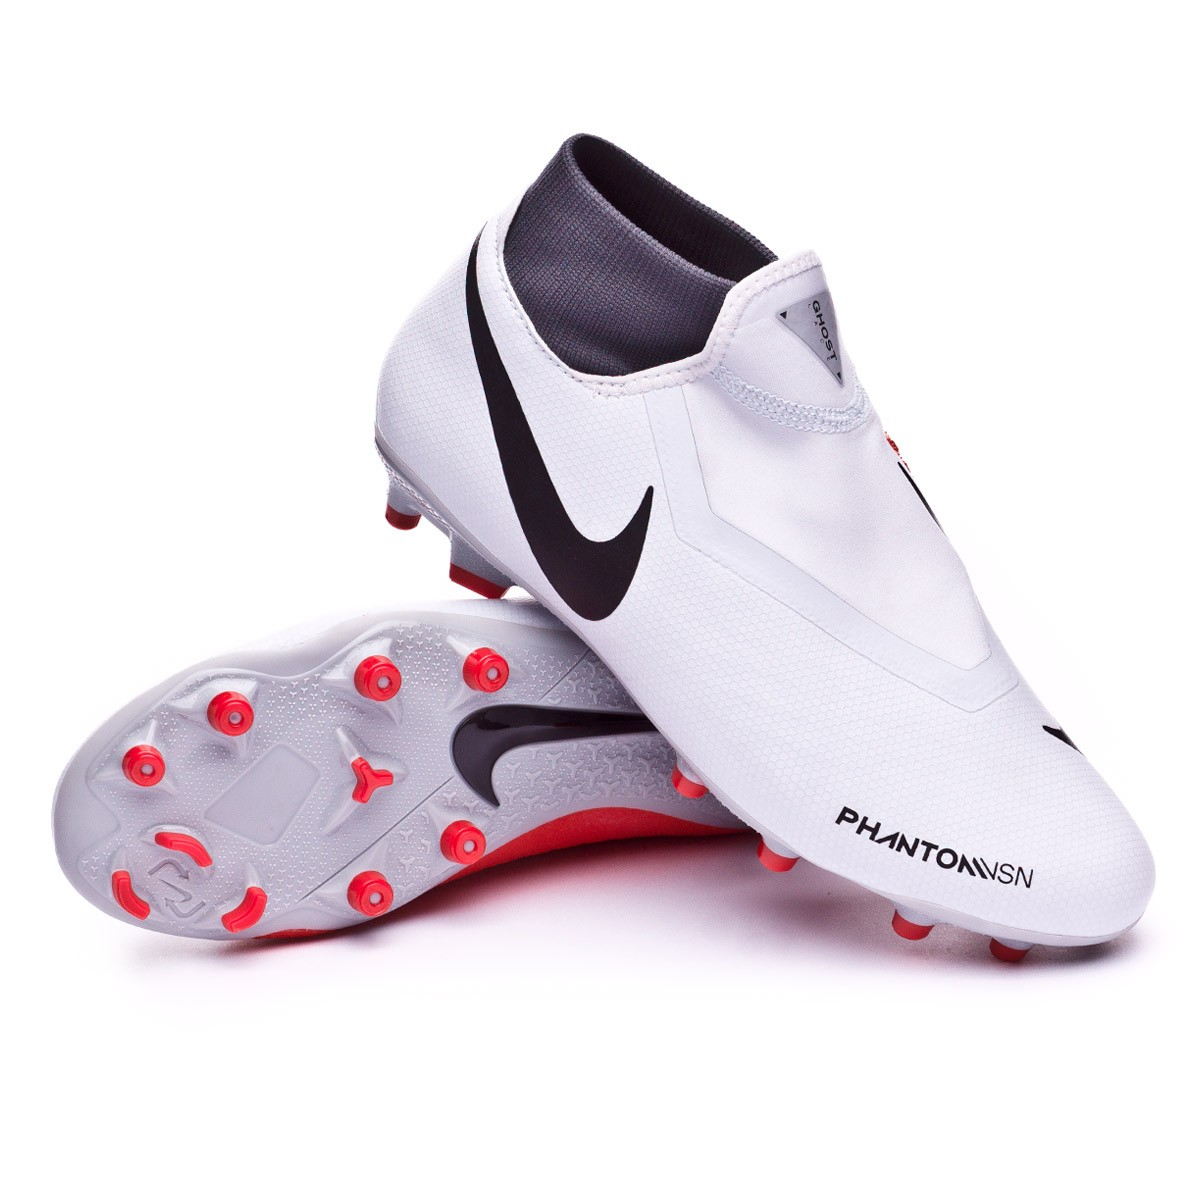 a29416cf88e62 Zapatos de fútbol Nike Phantom Vision Academy DF MG Pure  platinum-Black-Light crimson-Dark grey - Tienda de fútbol Fútbol Emotion